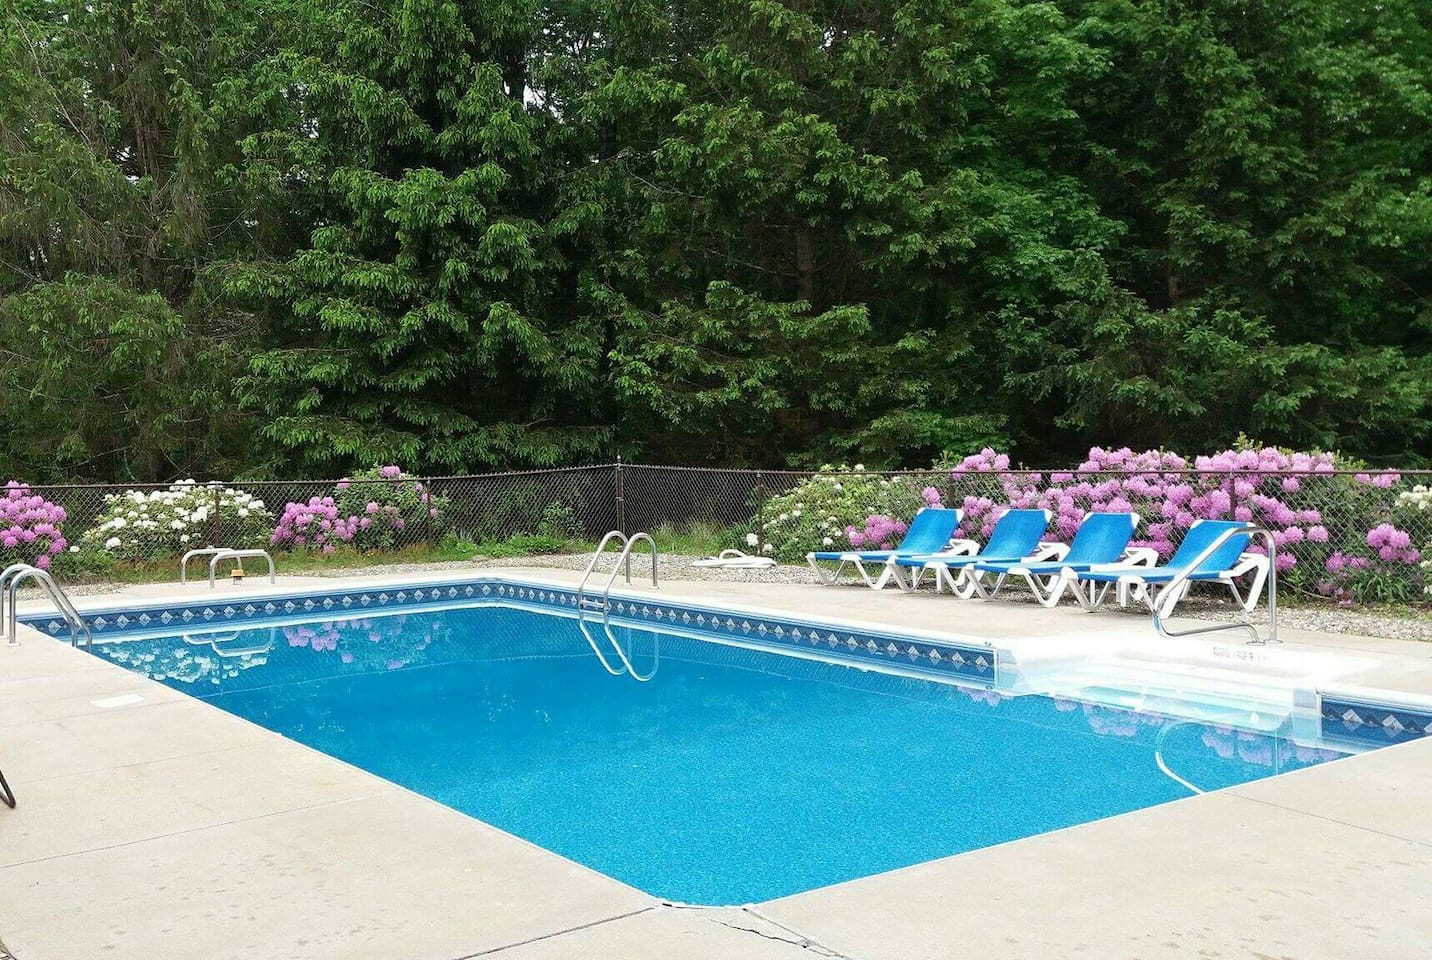 Relax by the pool after a long day or just spend the whole day in this oasis right out your back door.